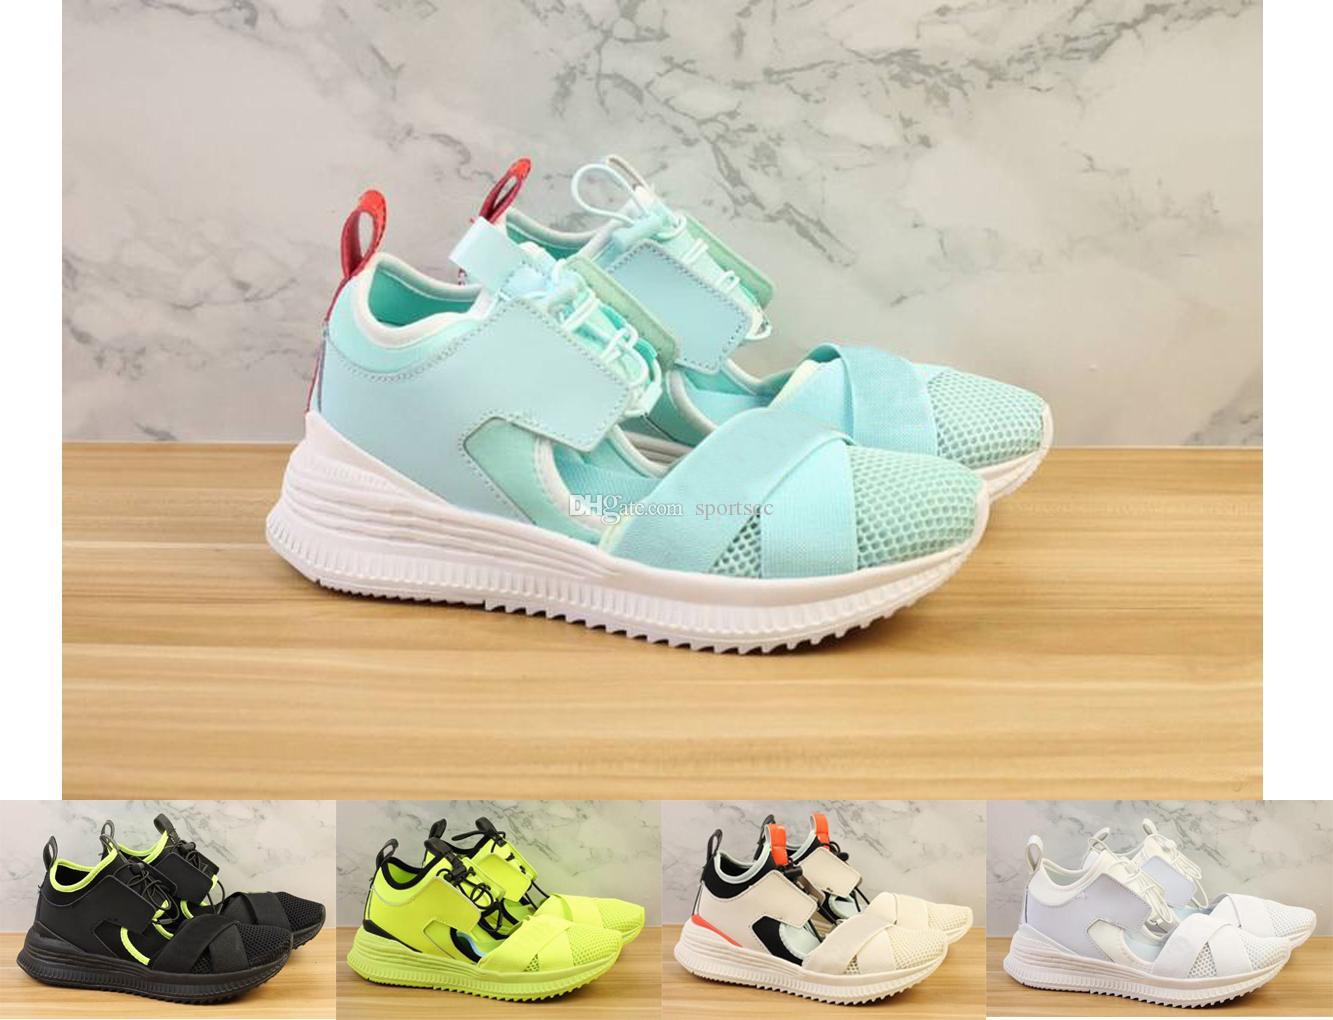 6f0cd095de Women Fenty Rihanna Avid Sandal Green White Beige Black Yellow Trainers  Sandal Online with  98.21 Pair on Sportscc s Store